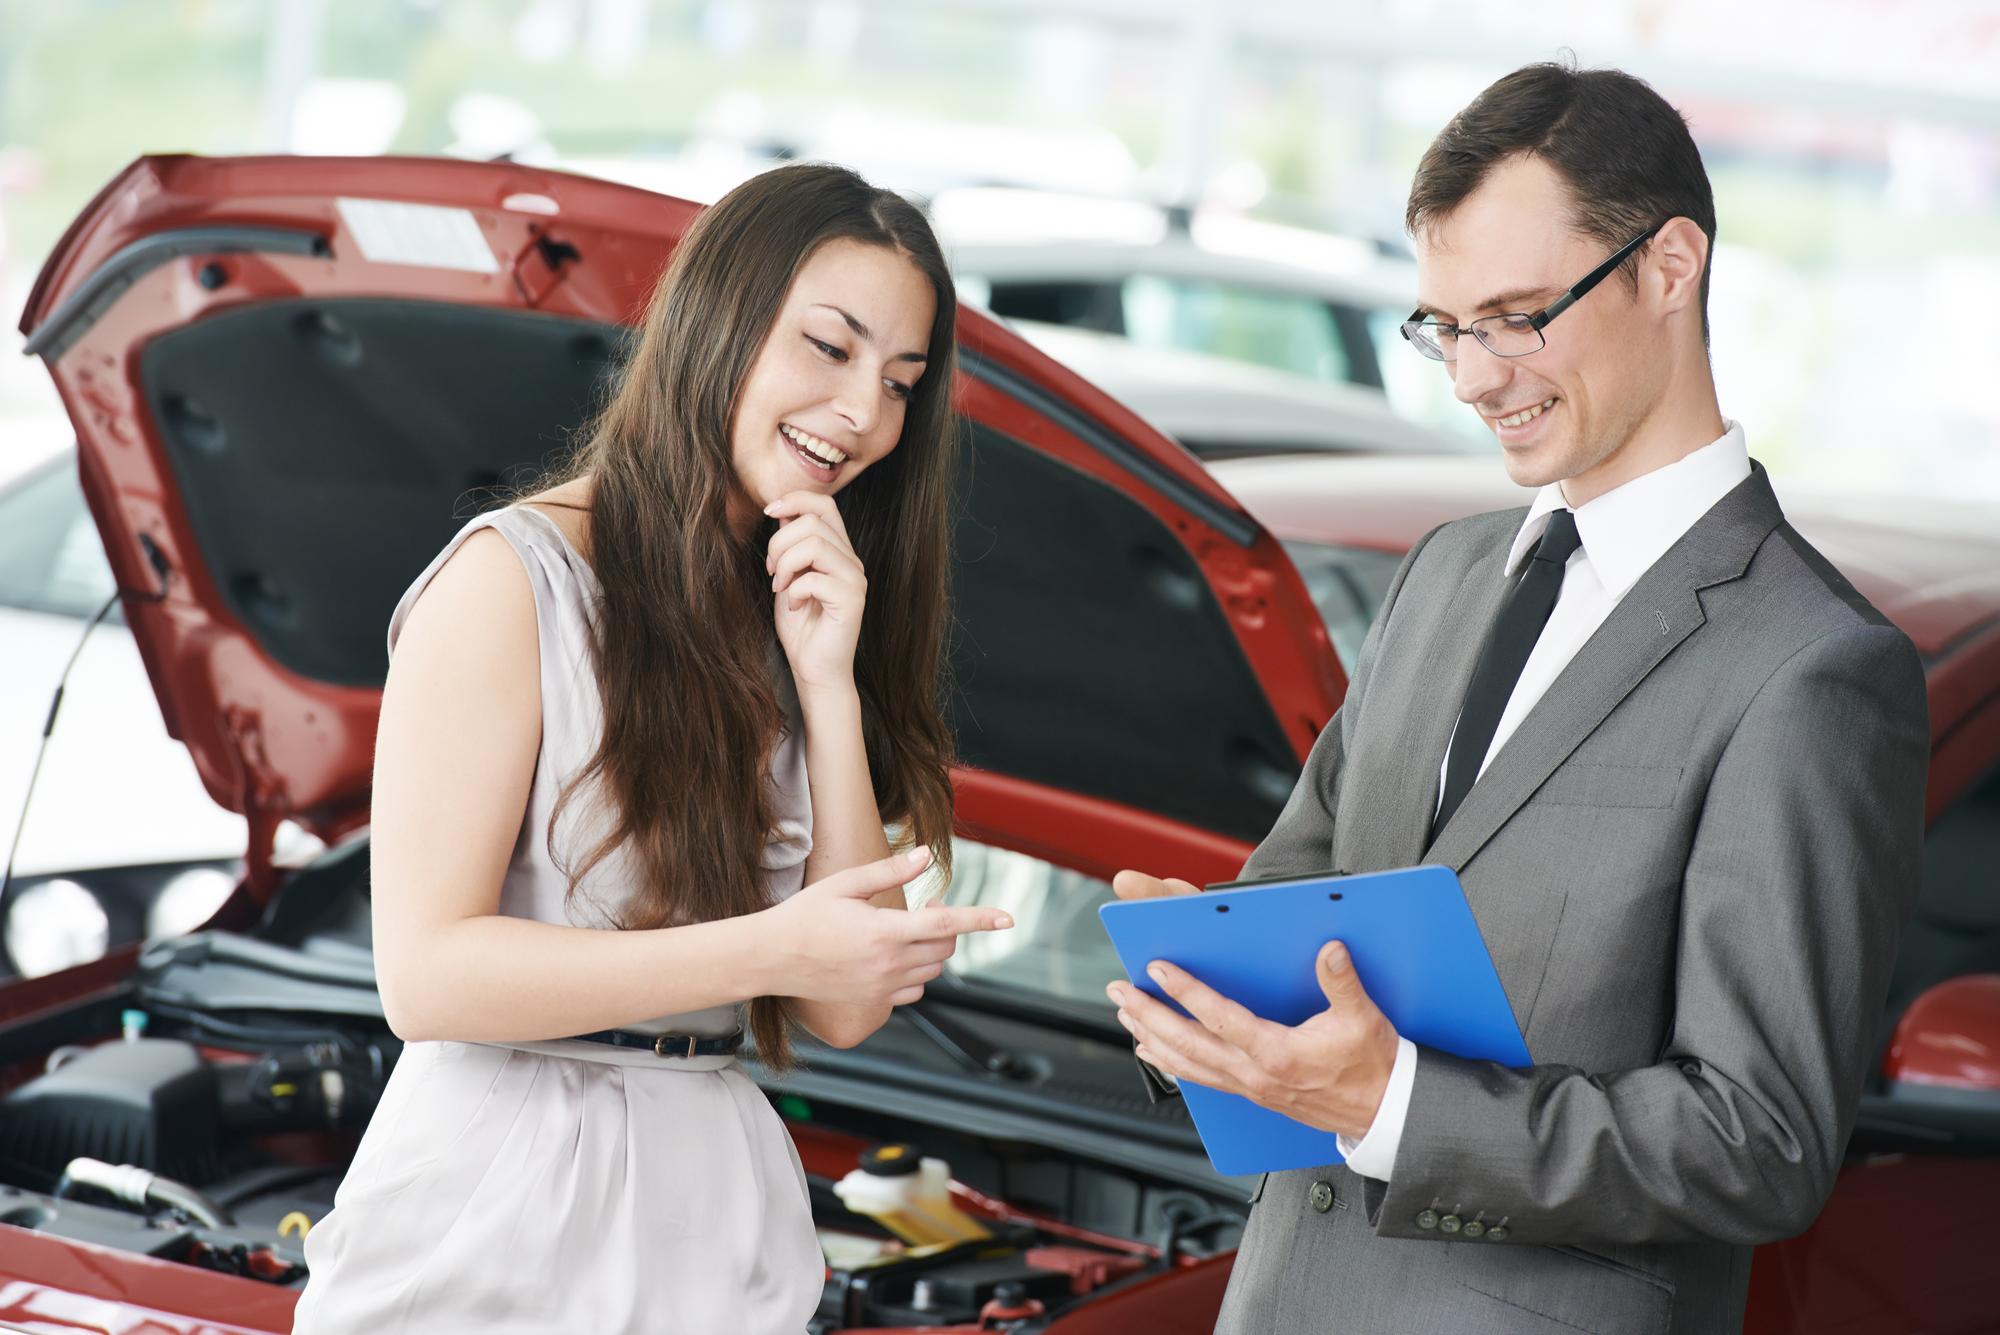 Getting a Used Car With Subpar Credit